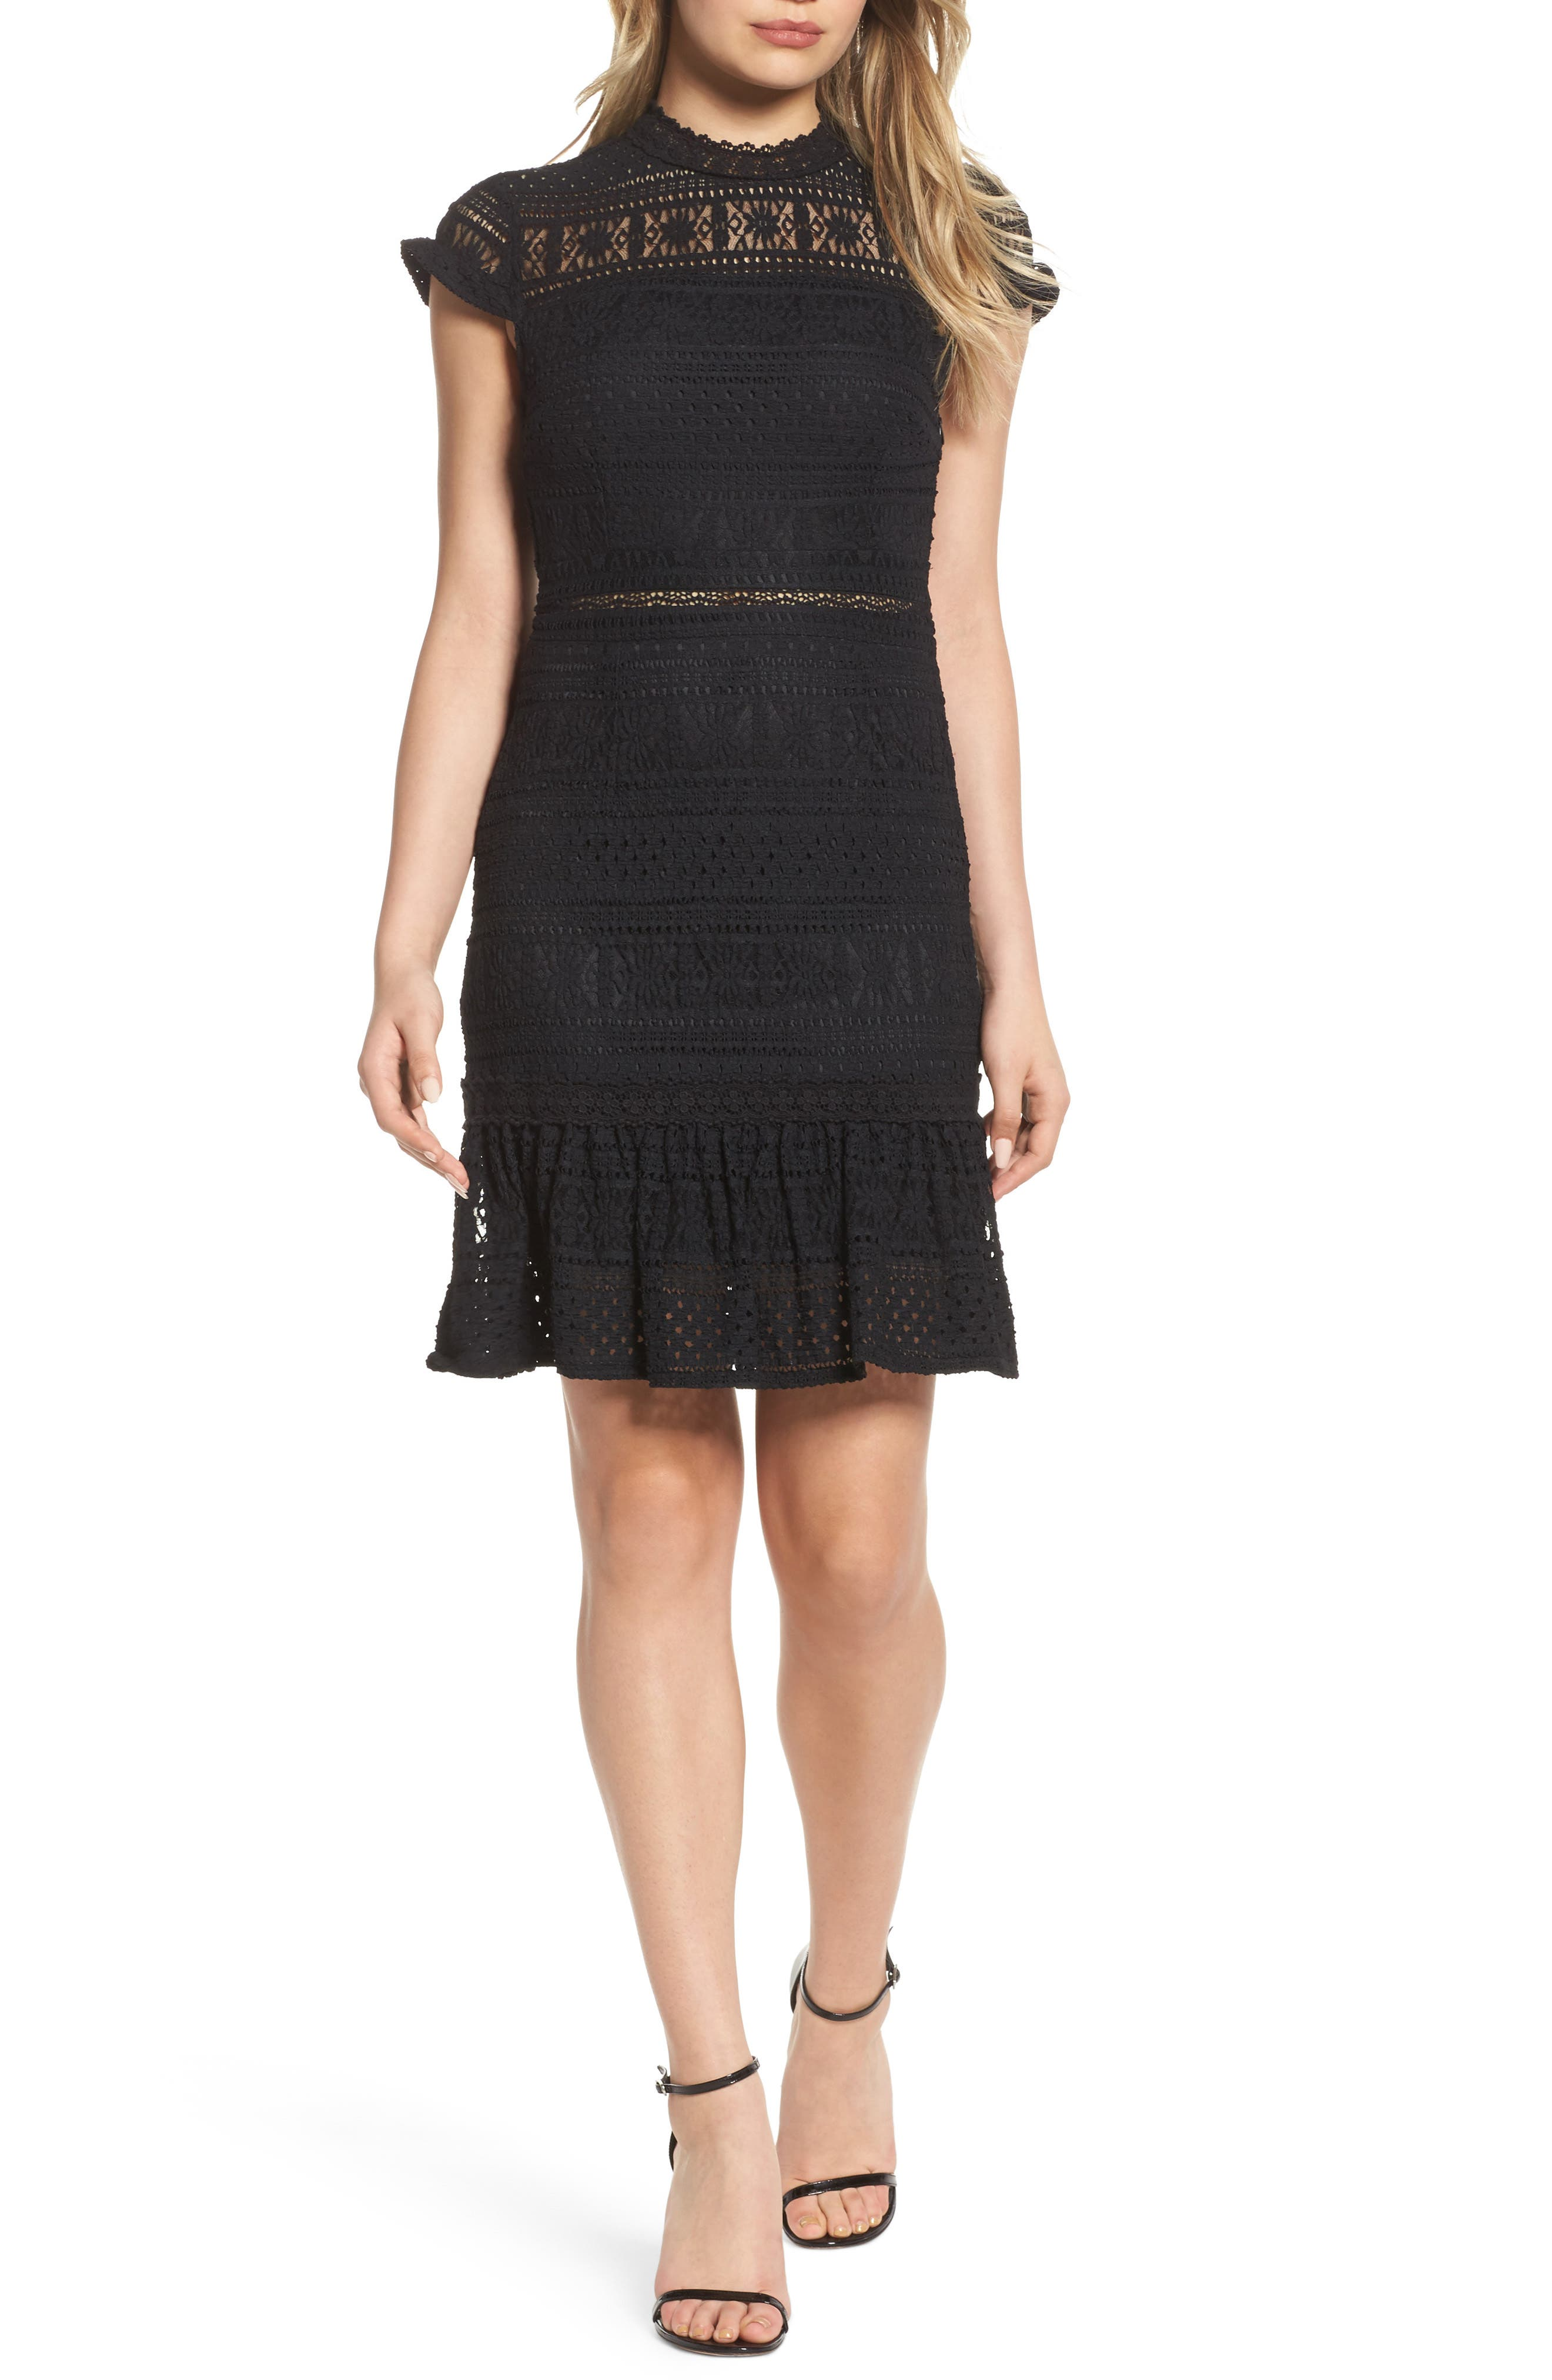 Alternate Image 1 Selected - Foxiedox Ellie Fit & Flare Lace Dress